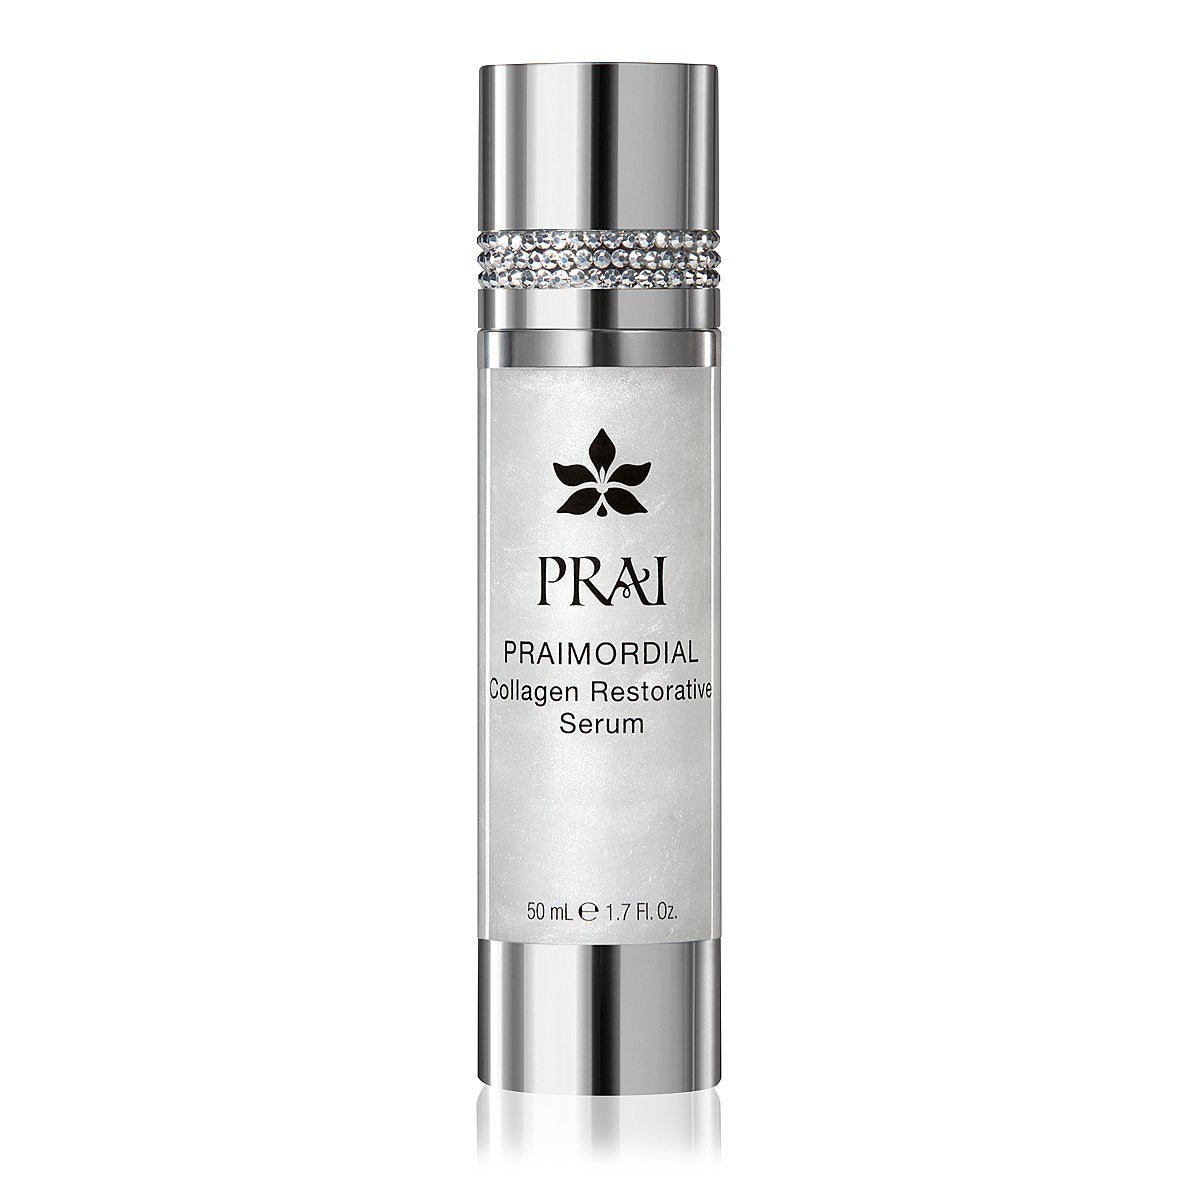 PRAI Beauty Praimordial Collagen Restorative Serum